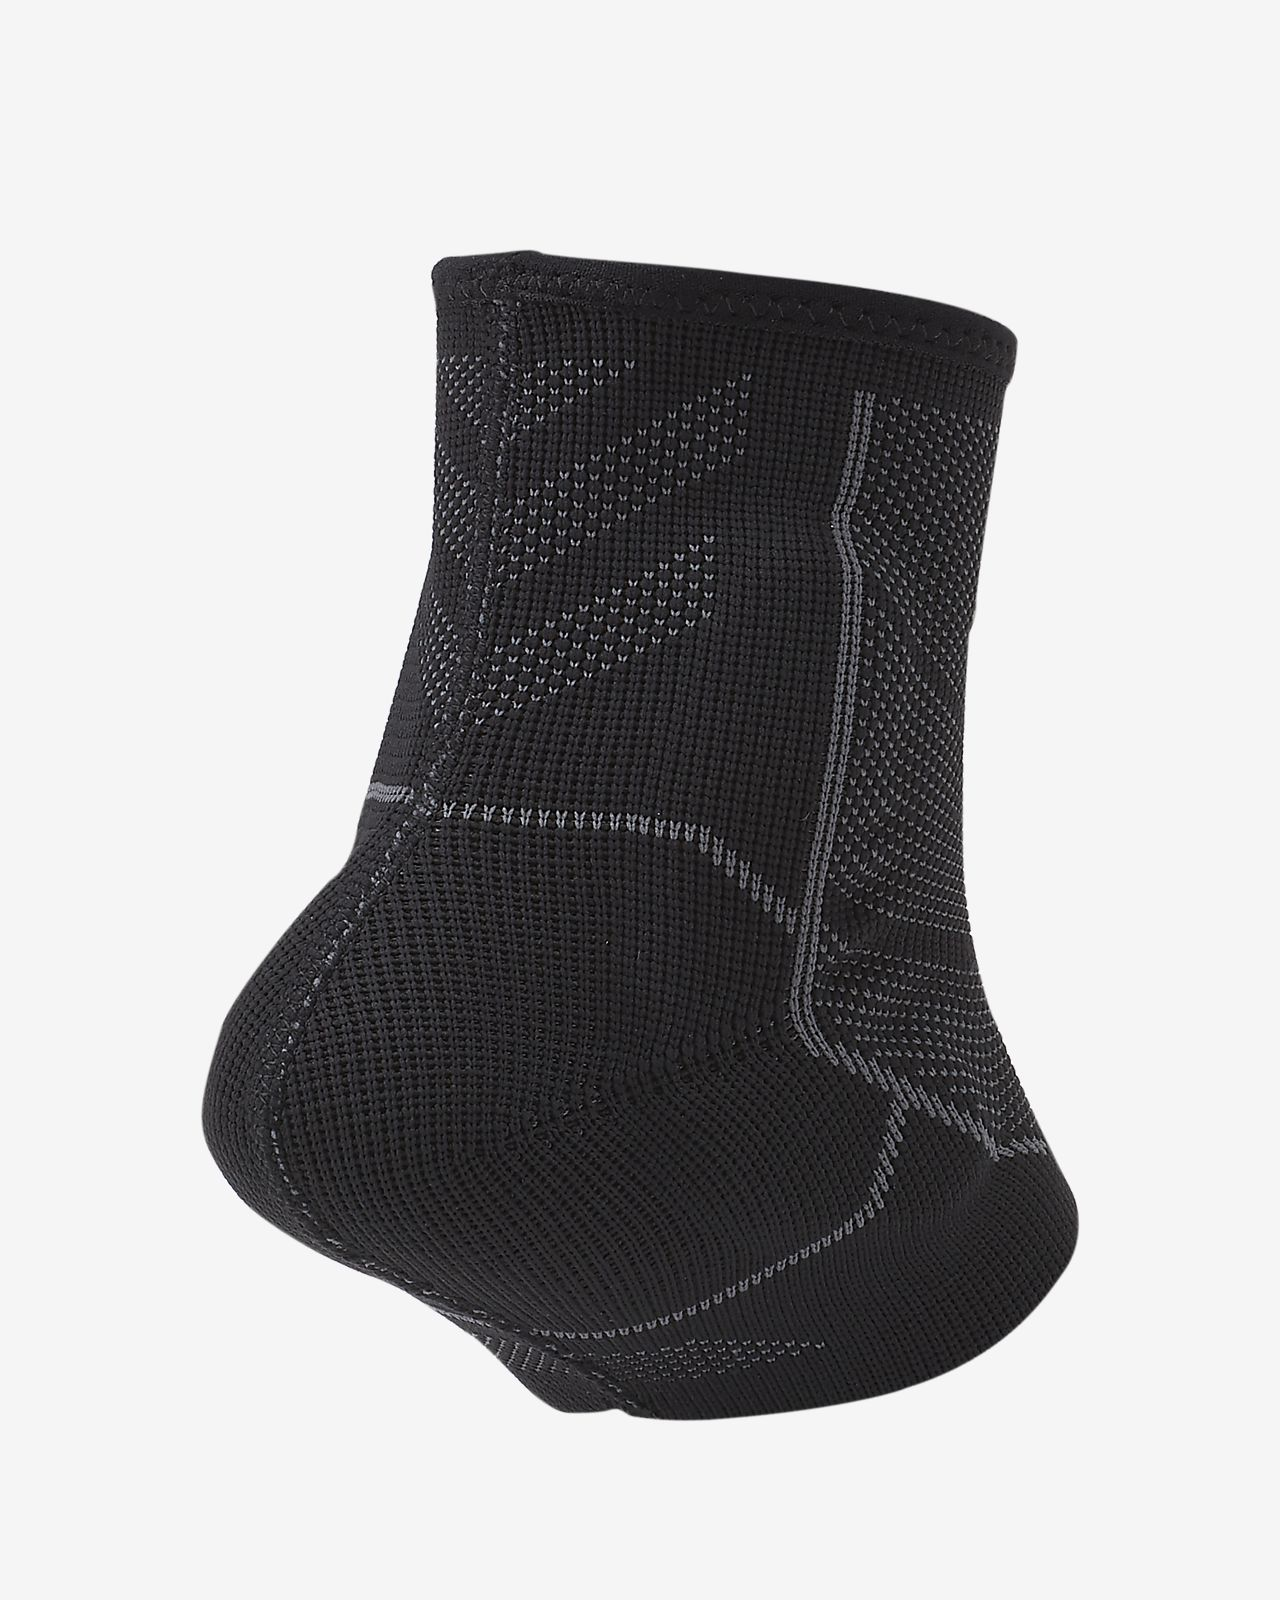 Nike Advantage Knitted 脚踝护套(1 只)